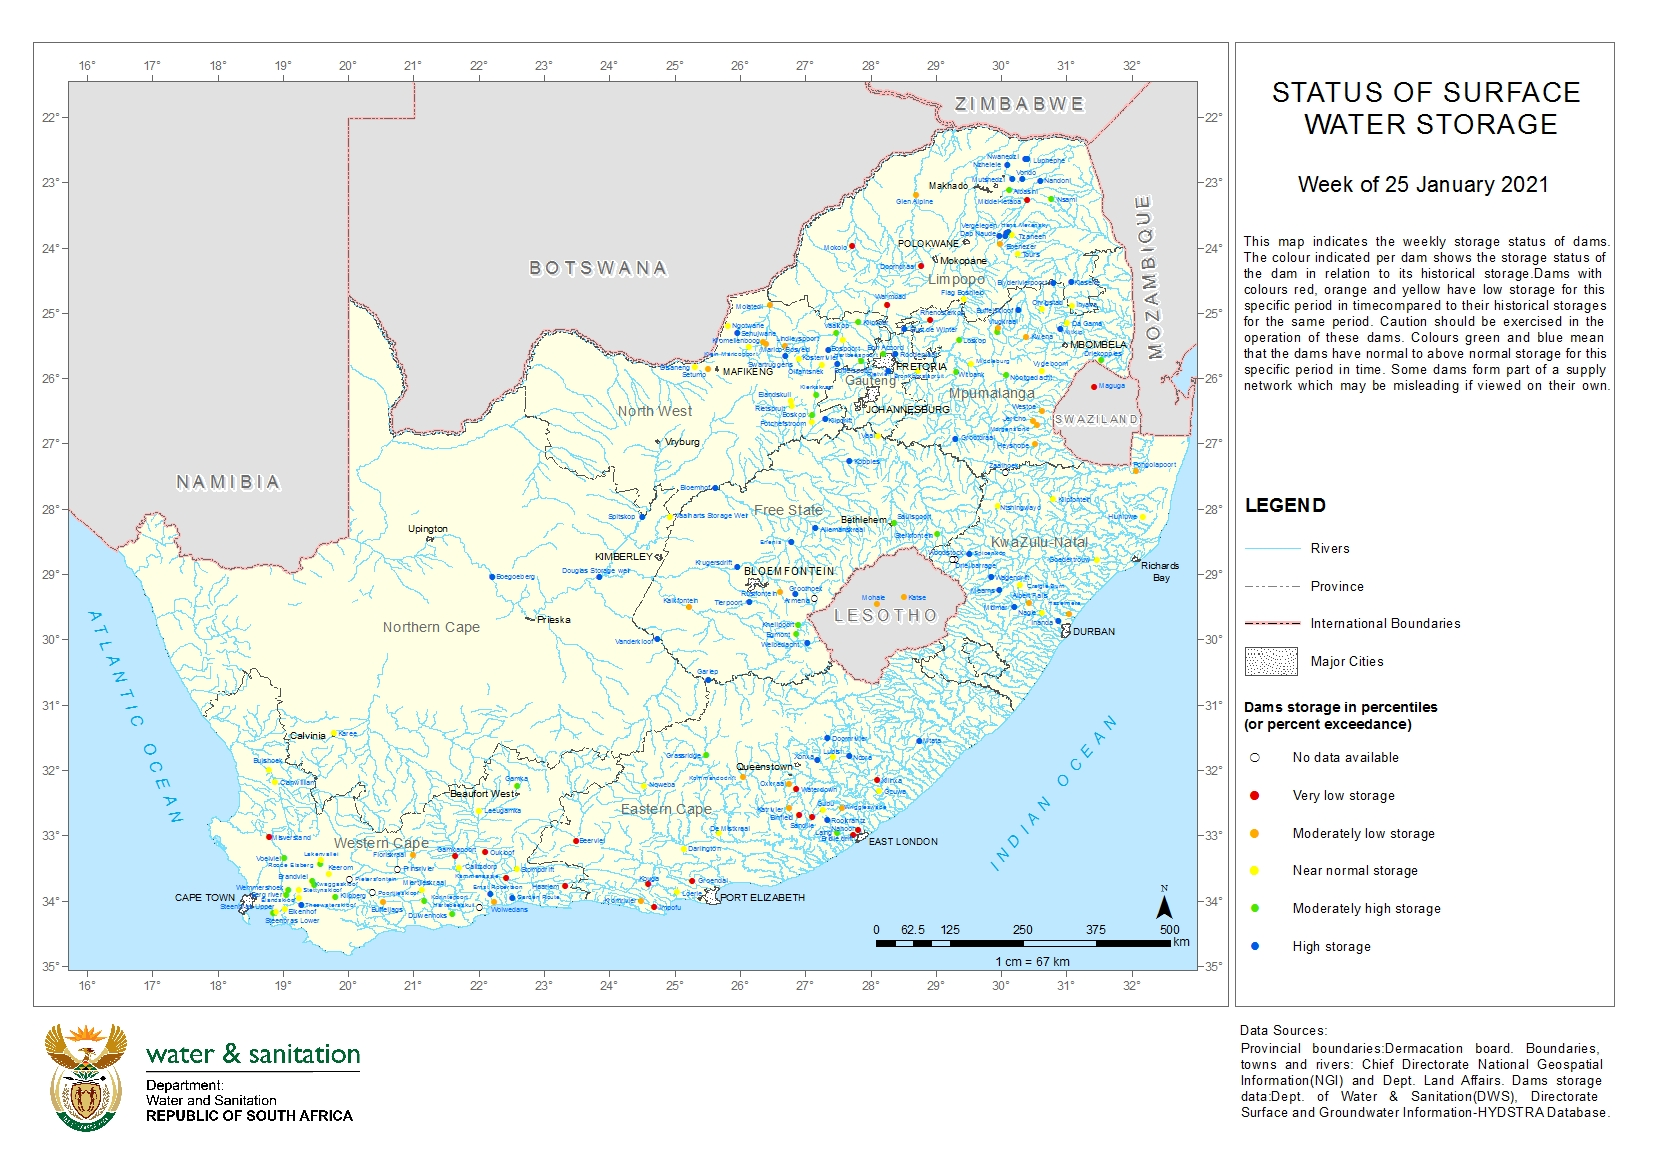 South Africa Water Management Areas - Dams and River Systems Maps 1